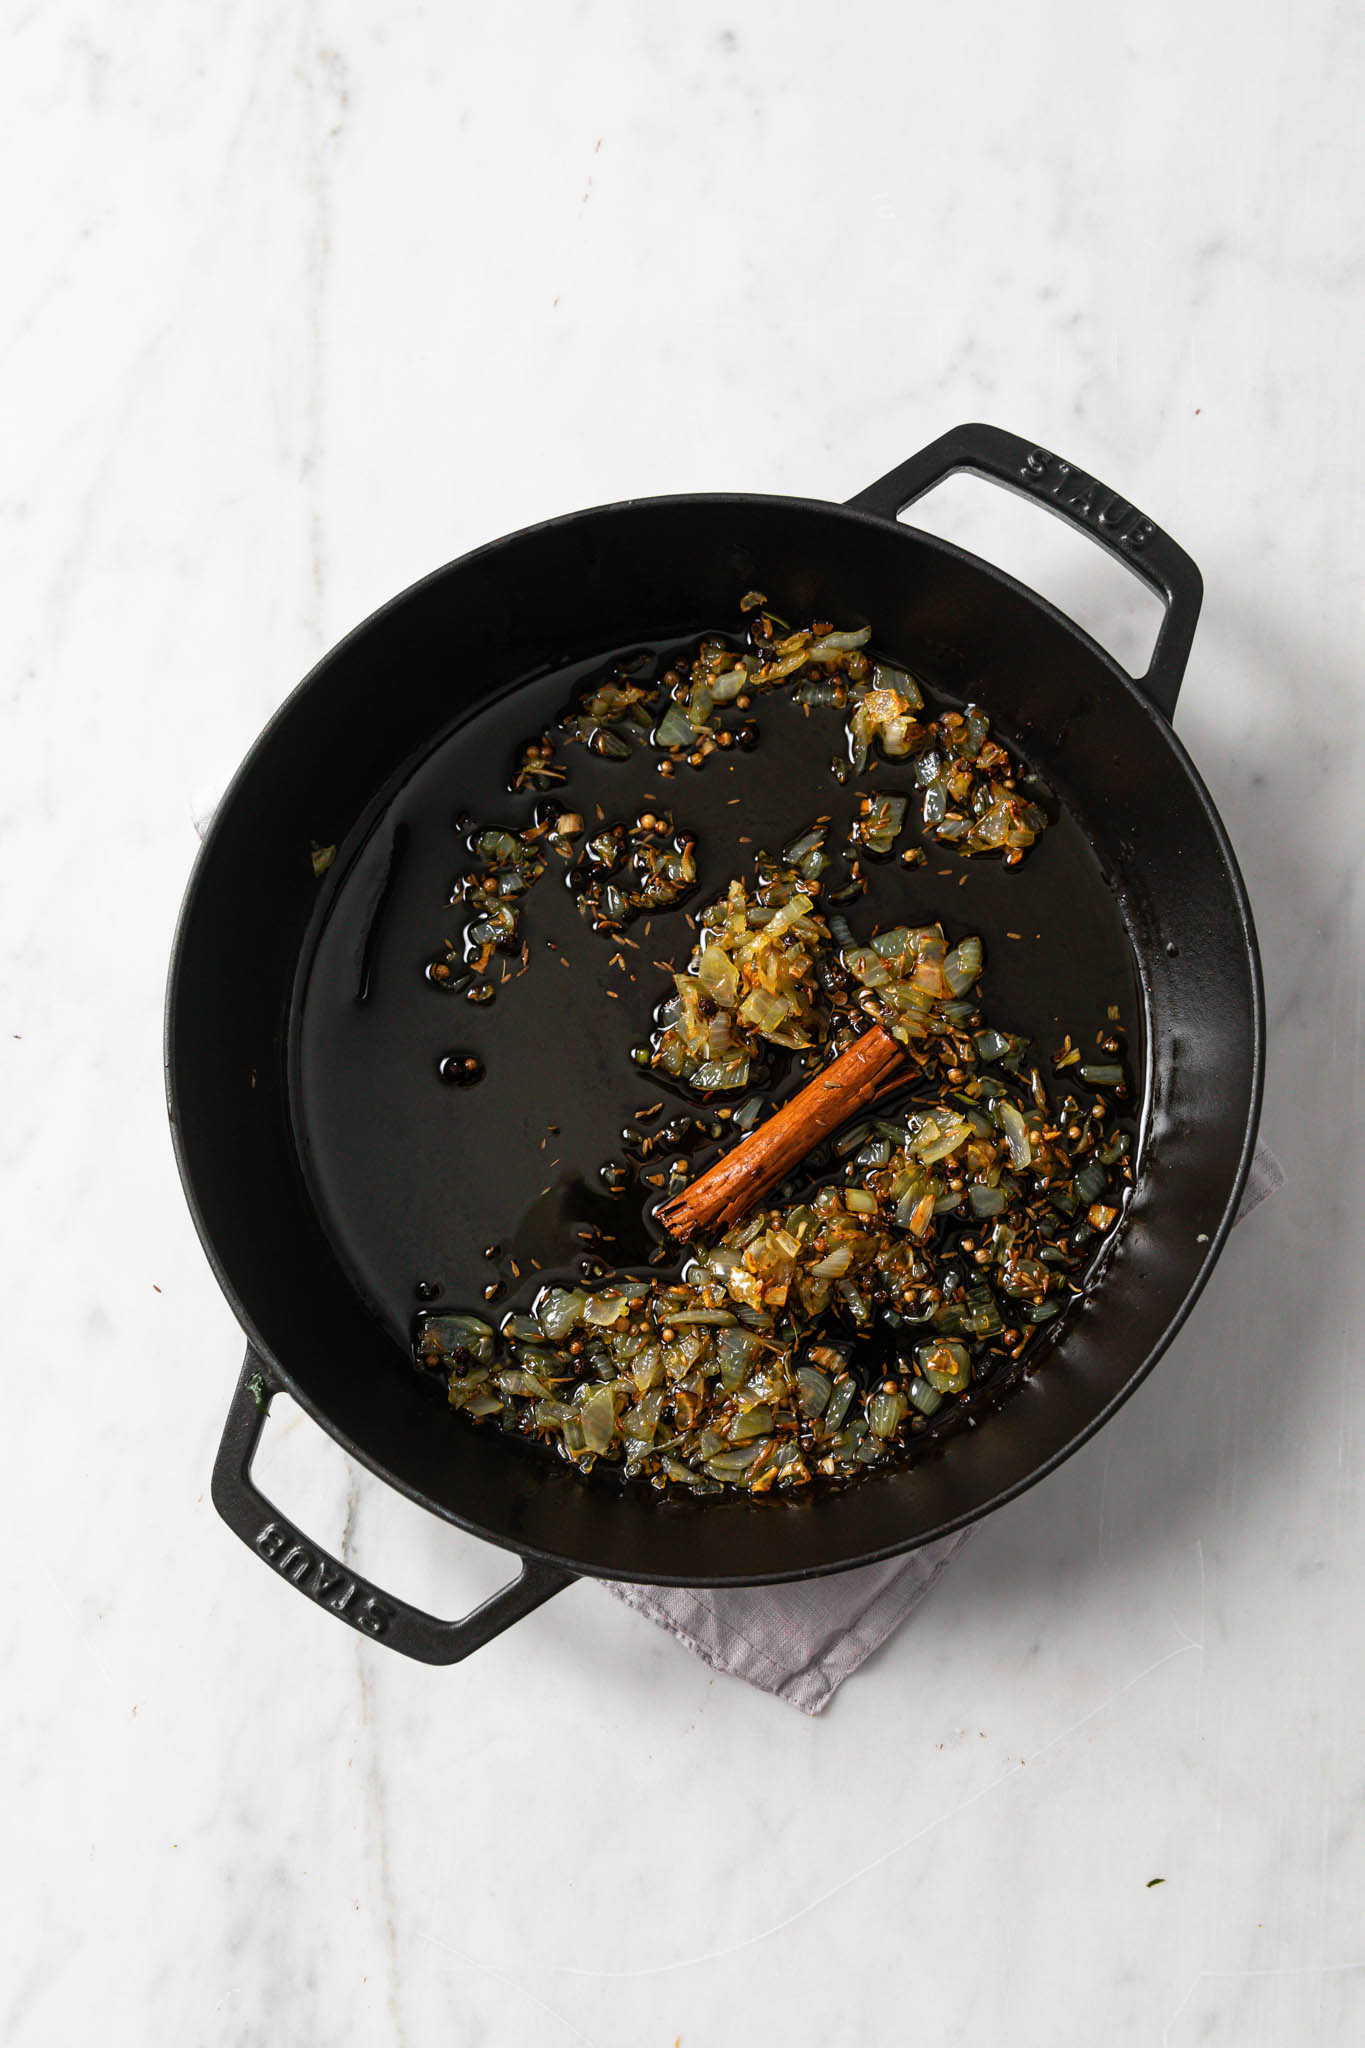 A black skillet with browned onions and whole spices in preparation for keema aloo